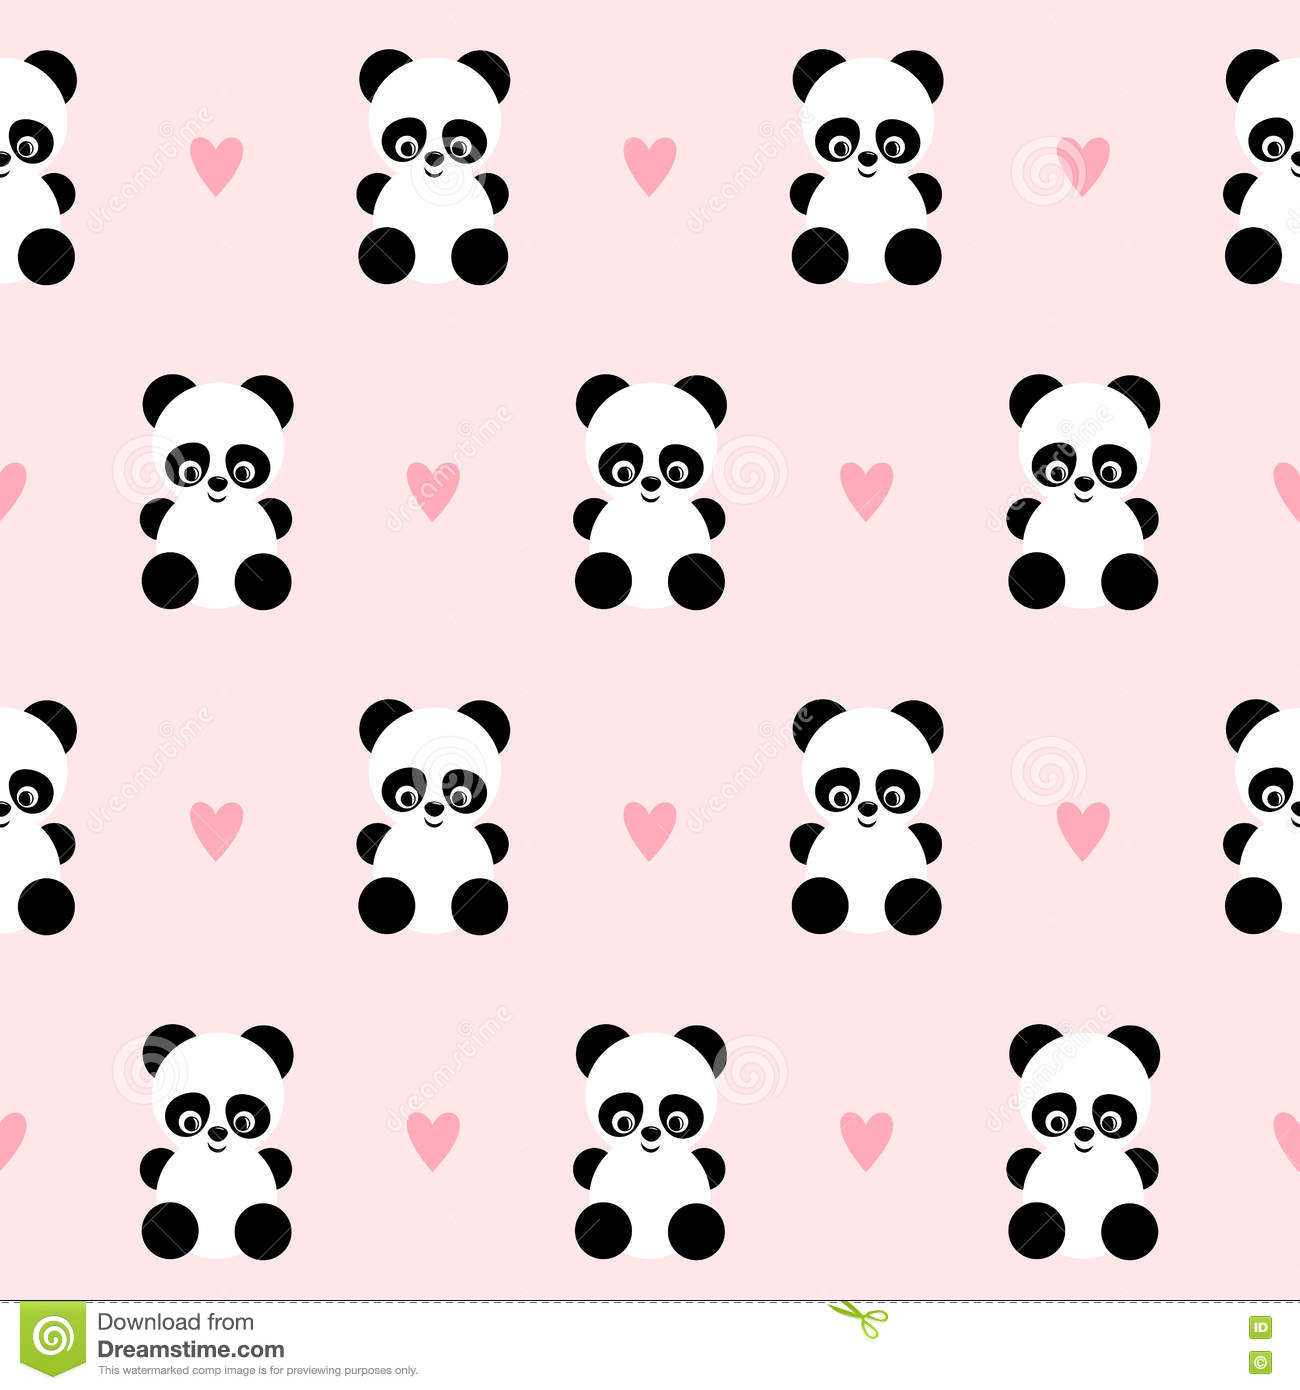 Stock Illustration Panda Hearts Seamless Pattern Pink Background Design Saint Valentines Day Vector Smiling Baby Animal Image78416217 likewise Lofoten Island From Norway Landscape Wallpaper as well Royalty Free Stock Photos Todo List Image13838958 additionally Royalty Free Stock Image Puppy Labrador Retriever Cream Image10729356 further Anime Romance In The Park Autumn Season. on cute thumbs up